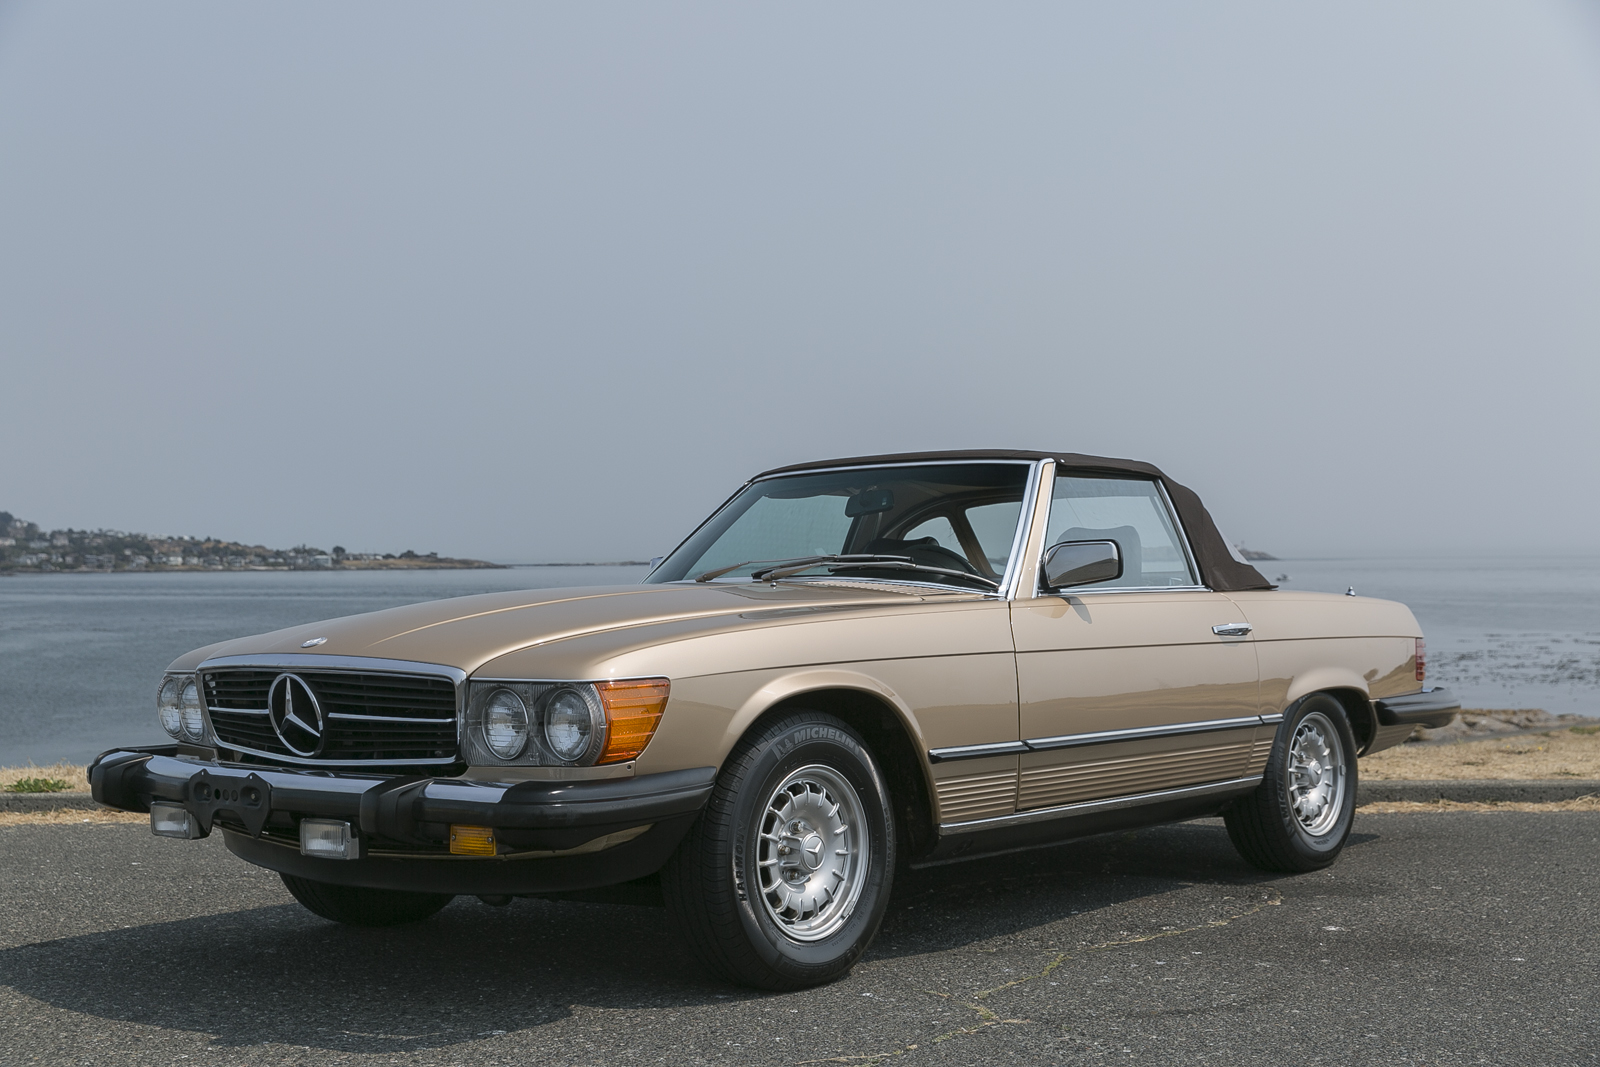 cars forum cheap mercedes for sale bhp classics vintage india team benz